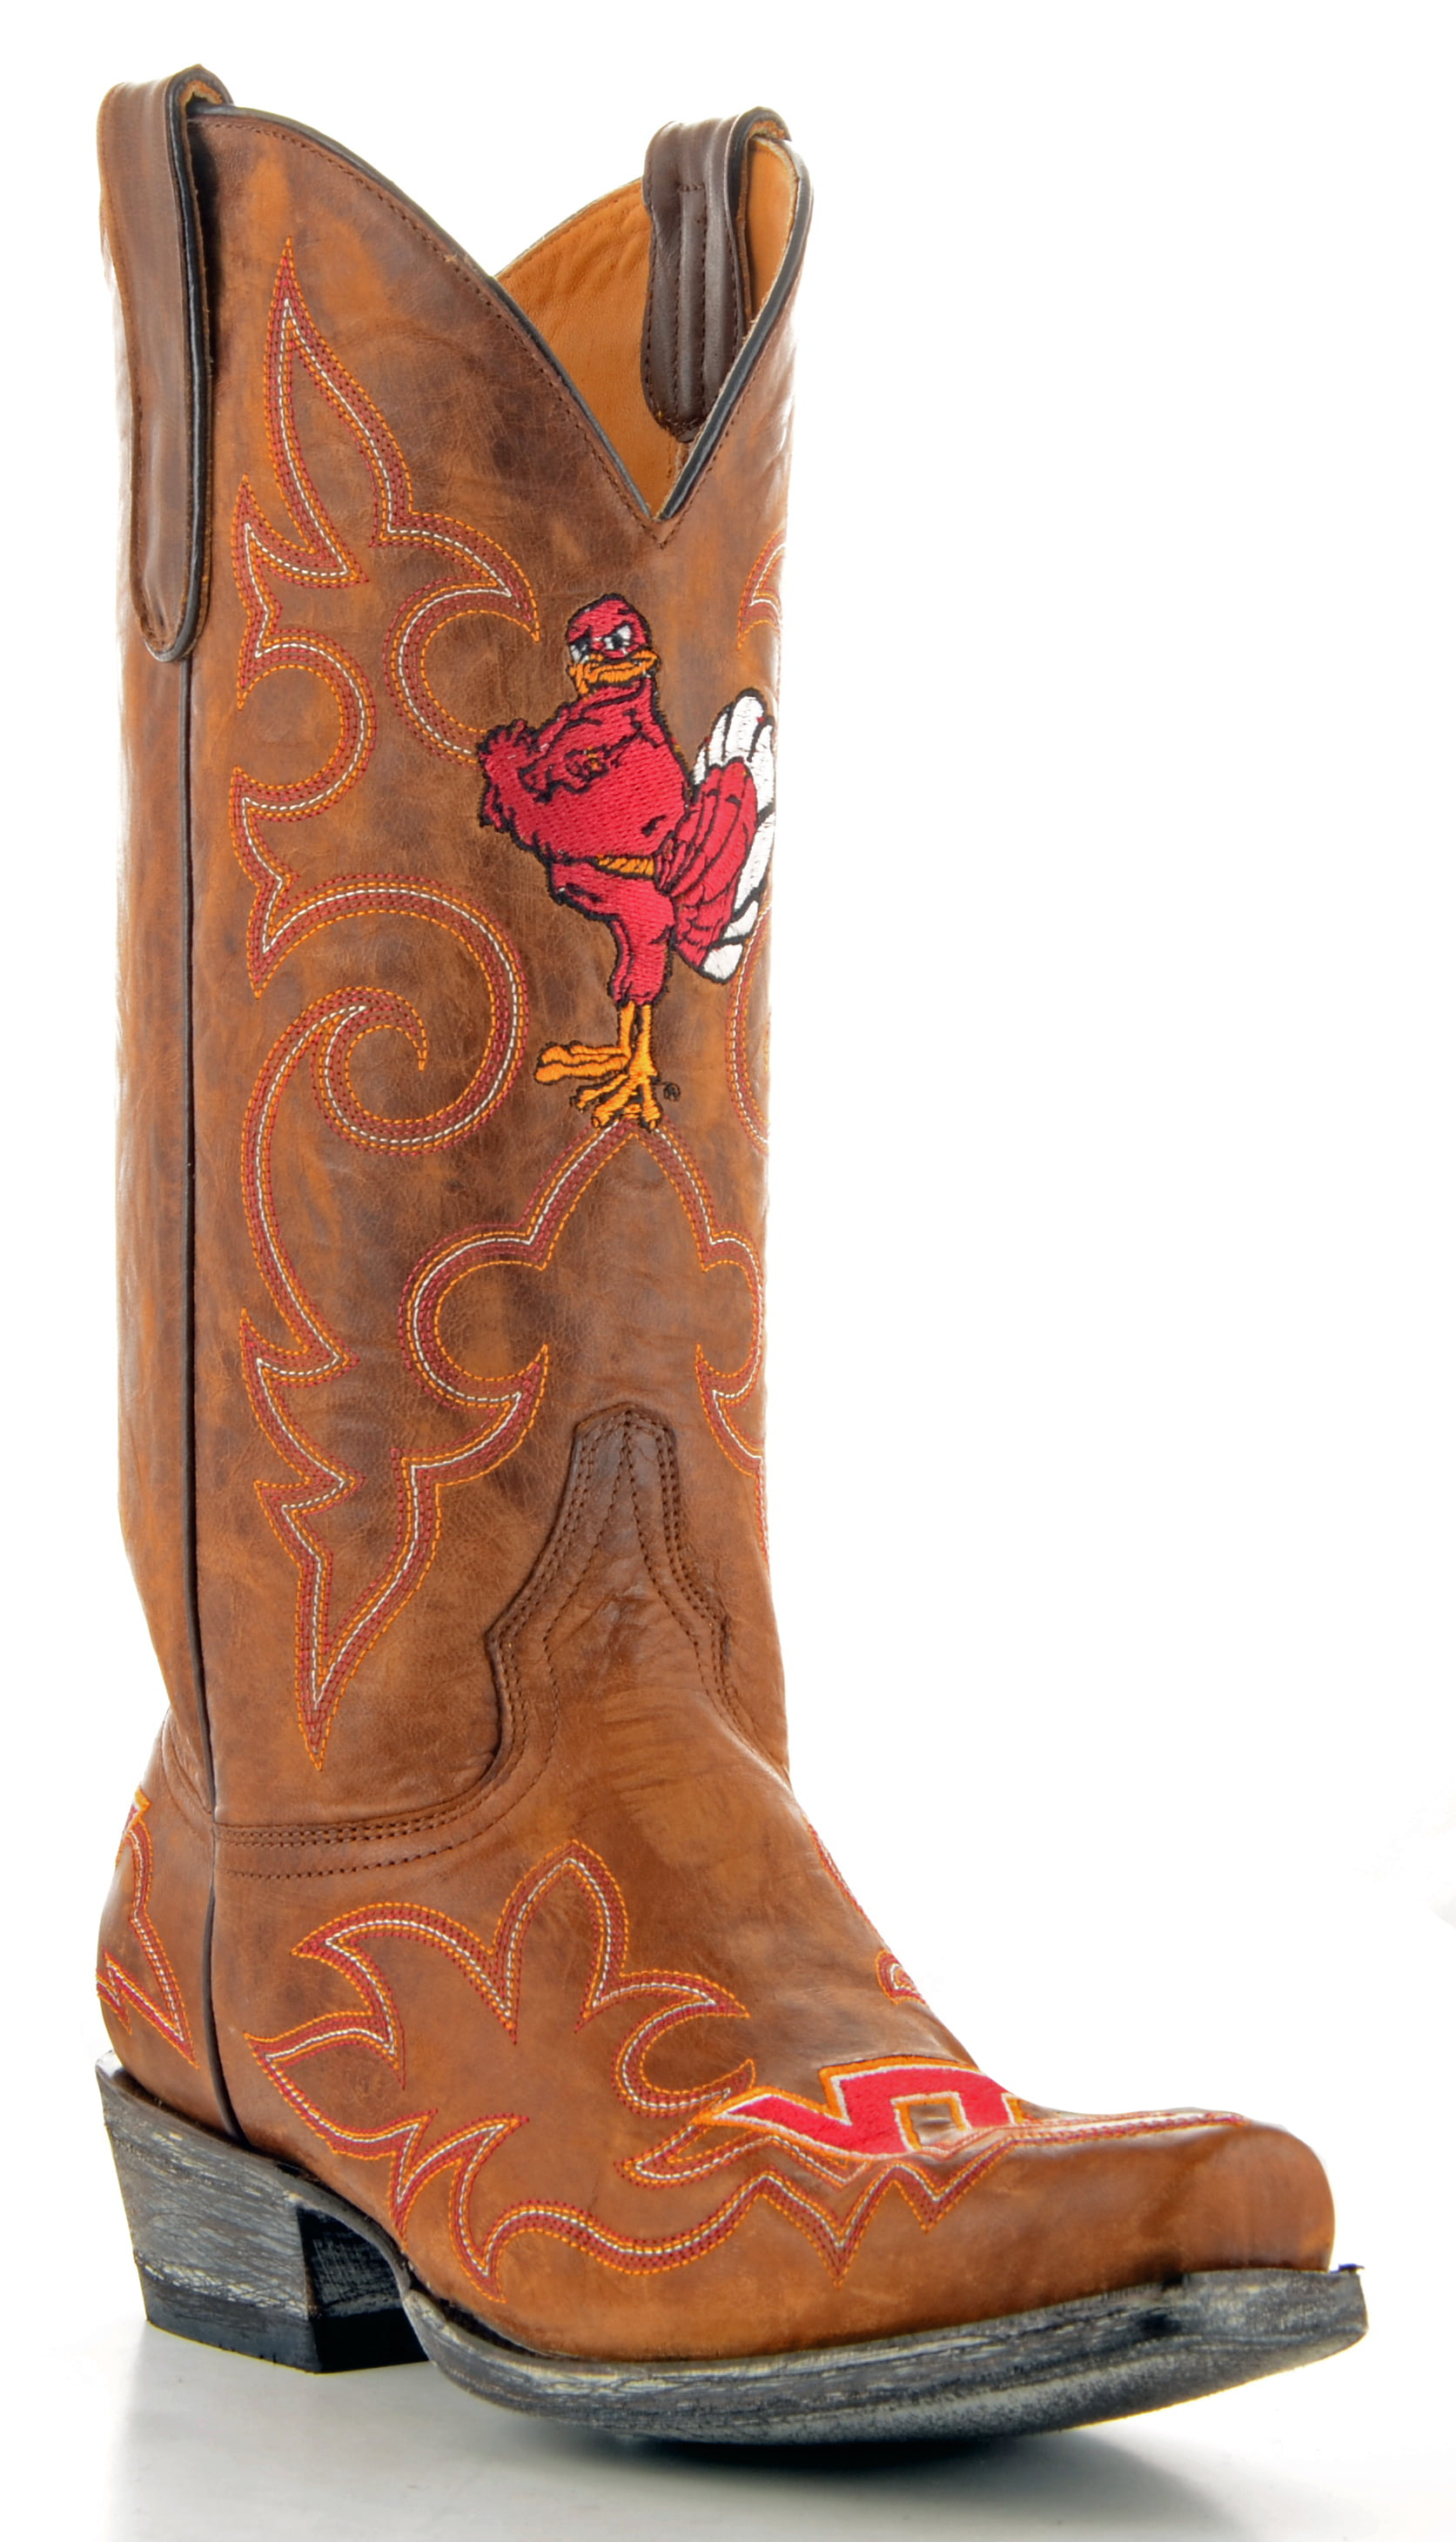 Gameday Boots Mens Leather Virginia Tech Cowboy Boots by GameDay Boots